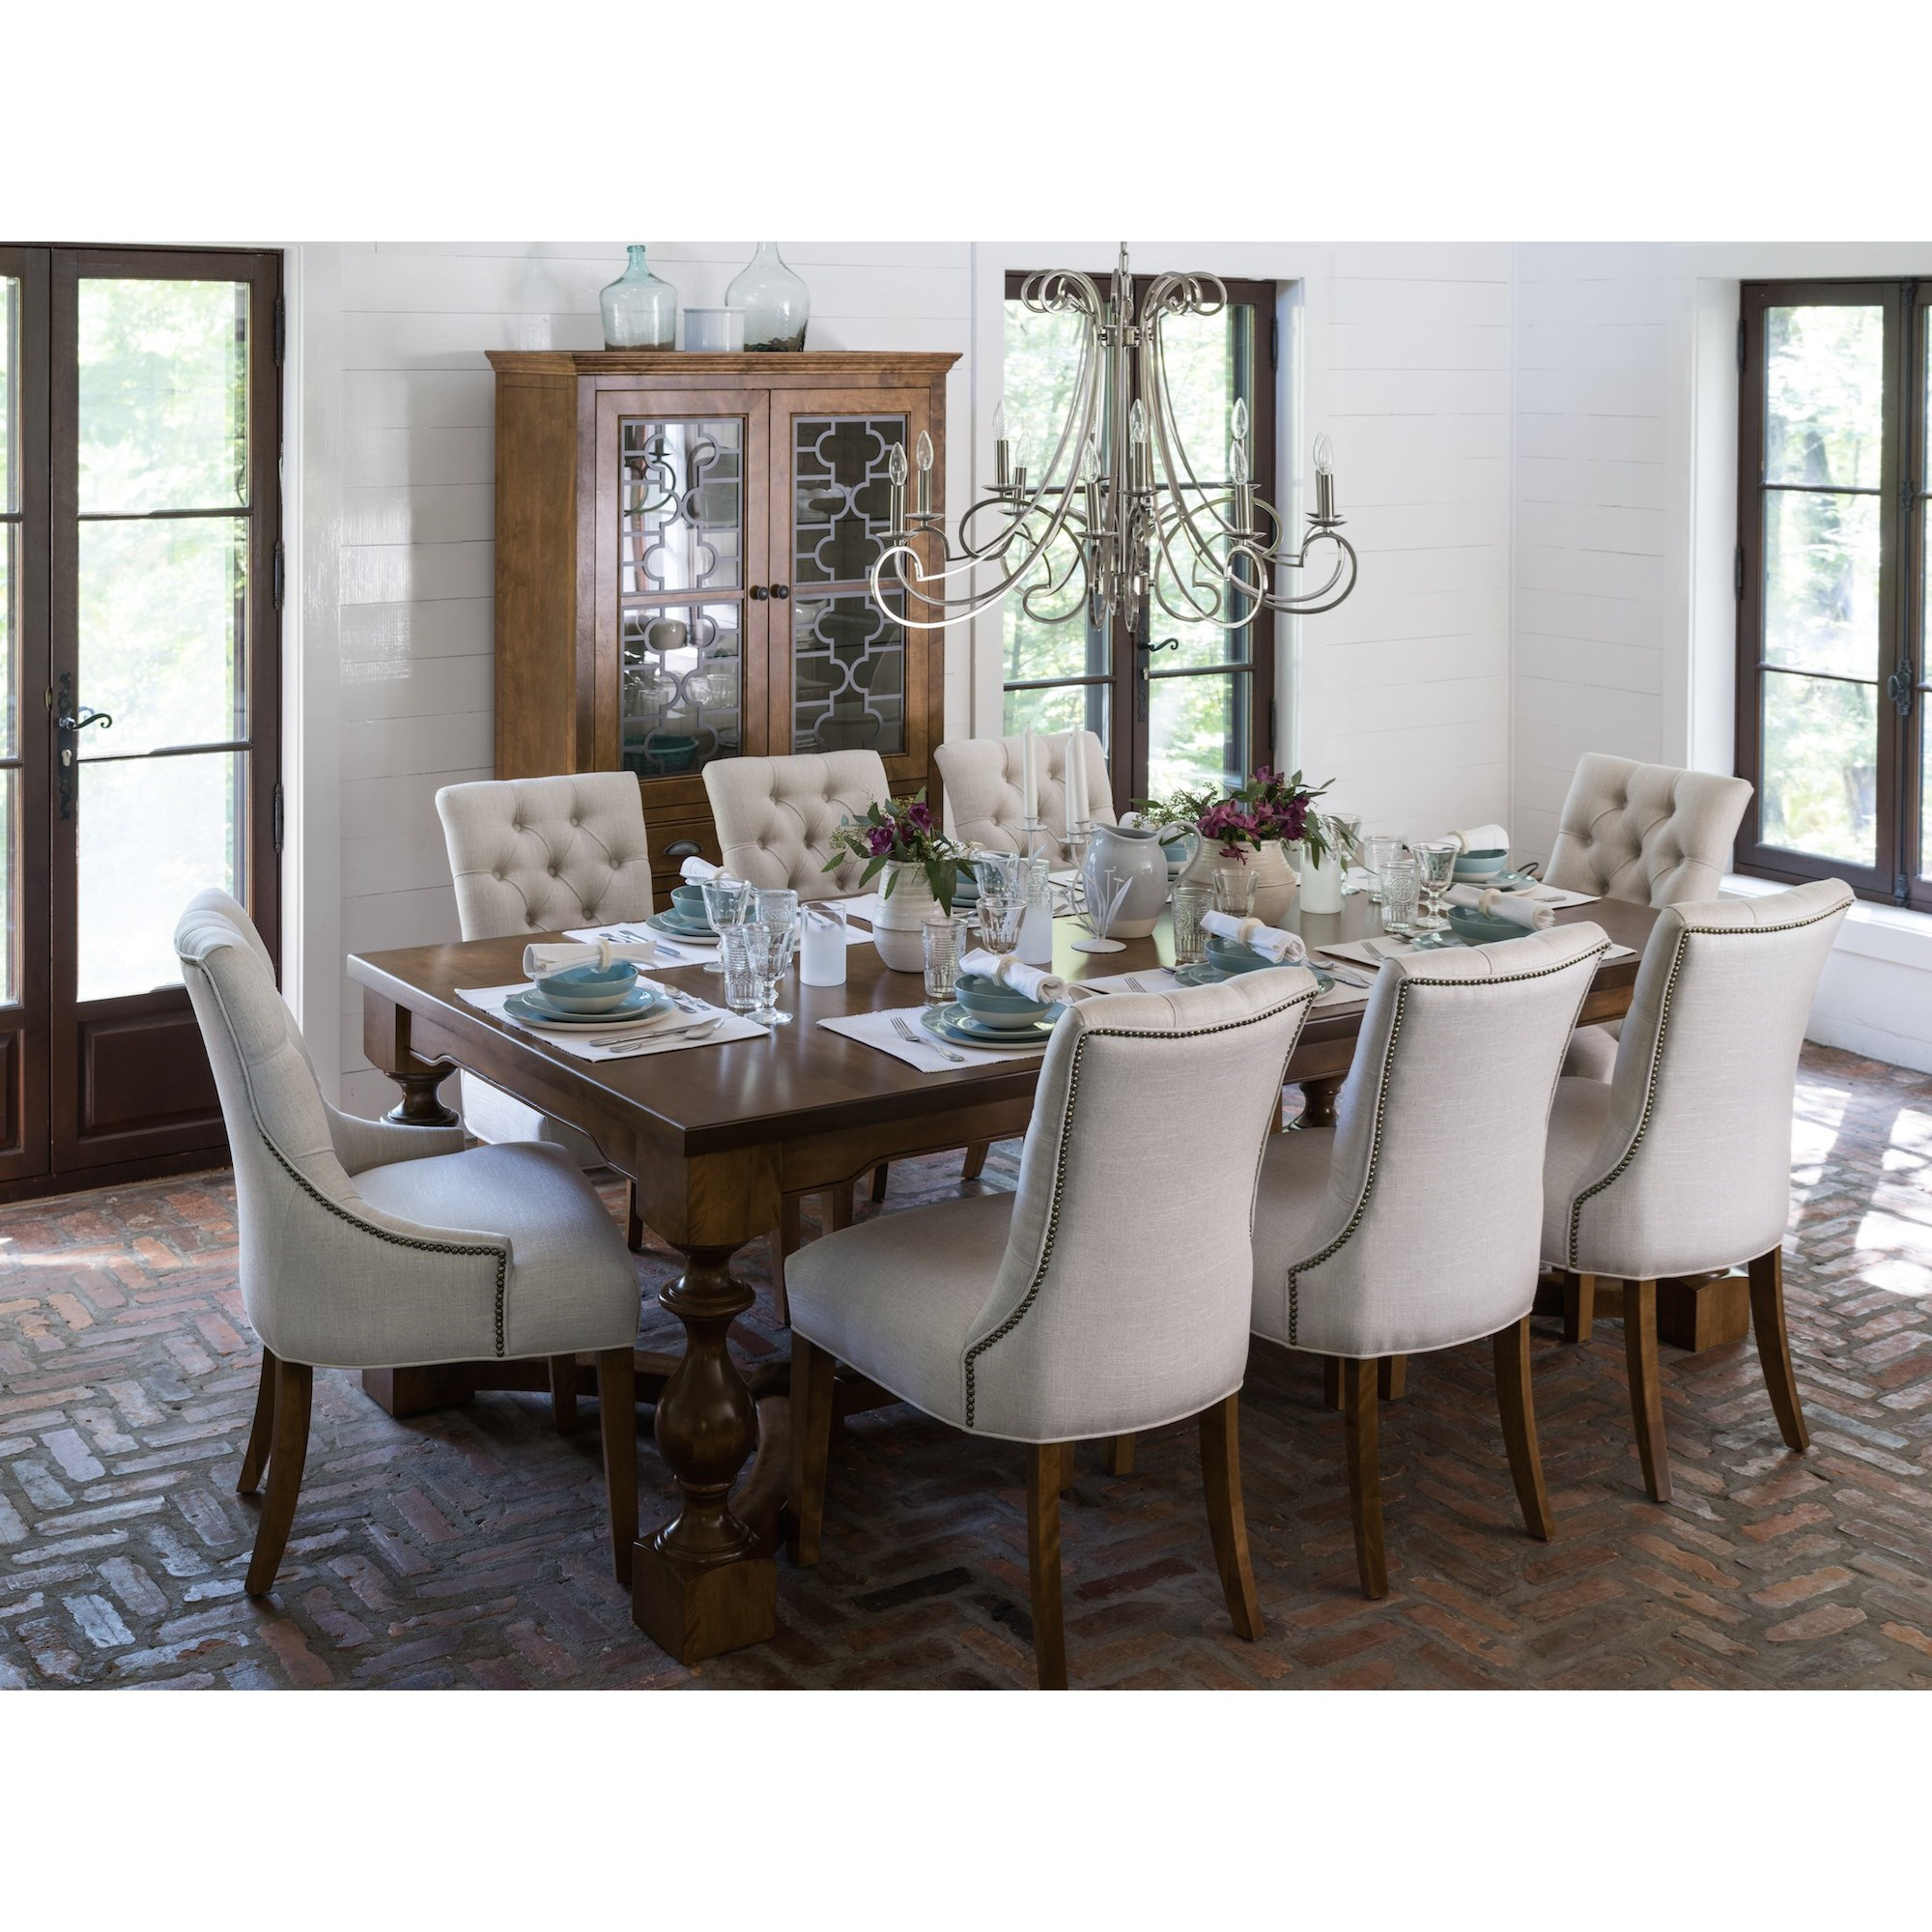 Formal Dining Room Furniture Manufacturers: Canadel Farmhouse Chic Dining Room Group